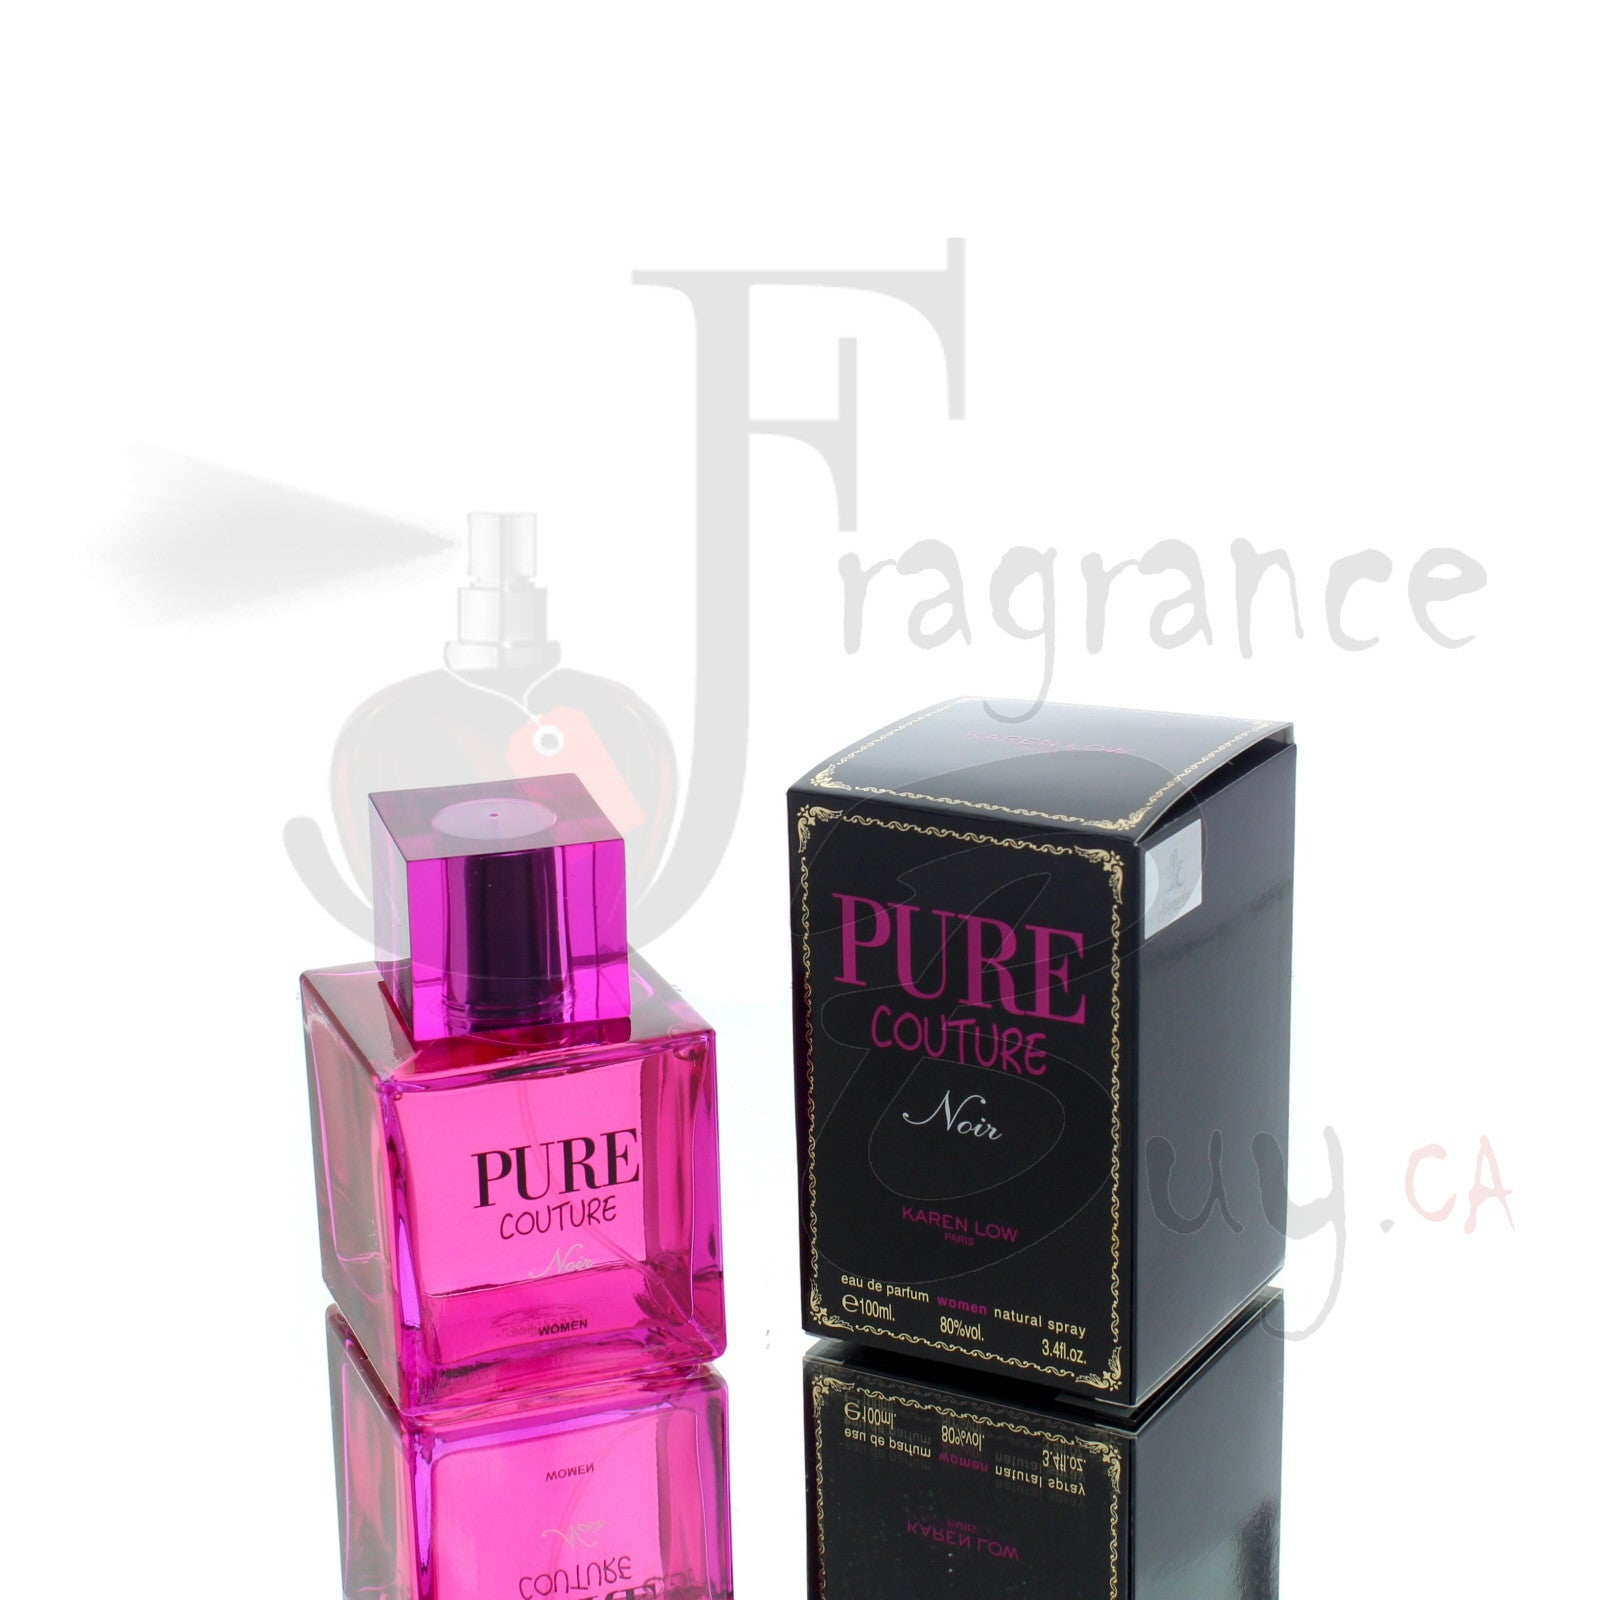 Karen Low Pure Couture Noir For Woman